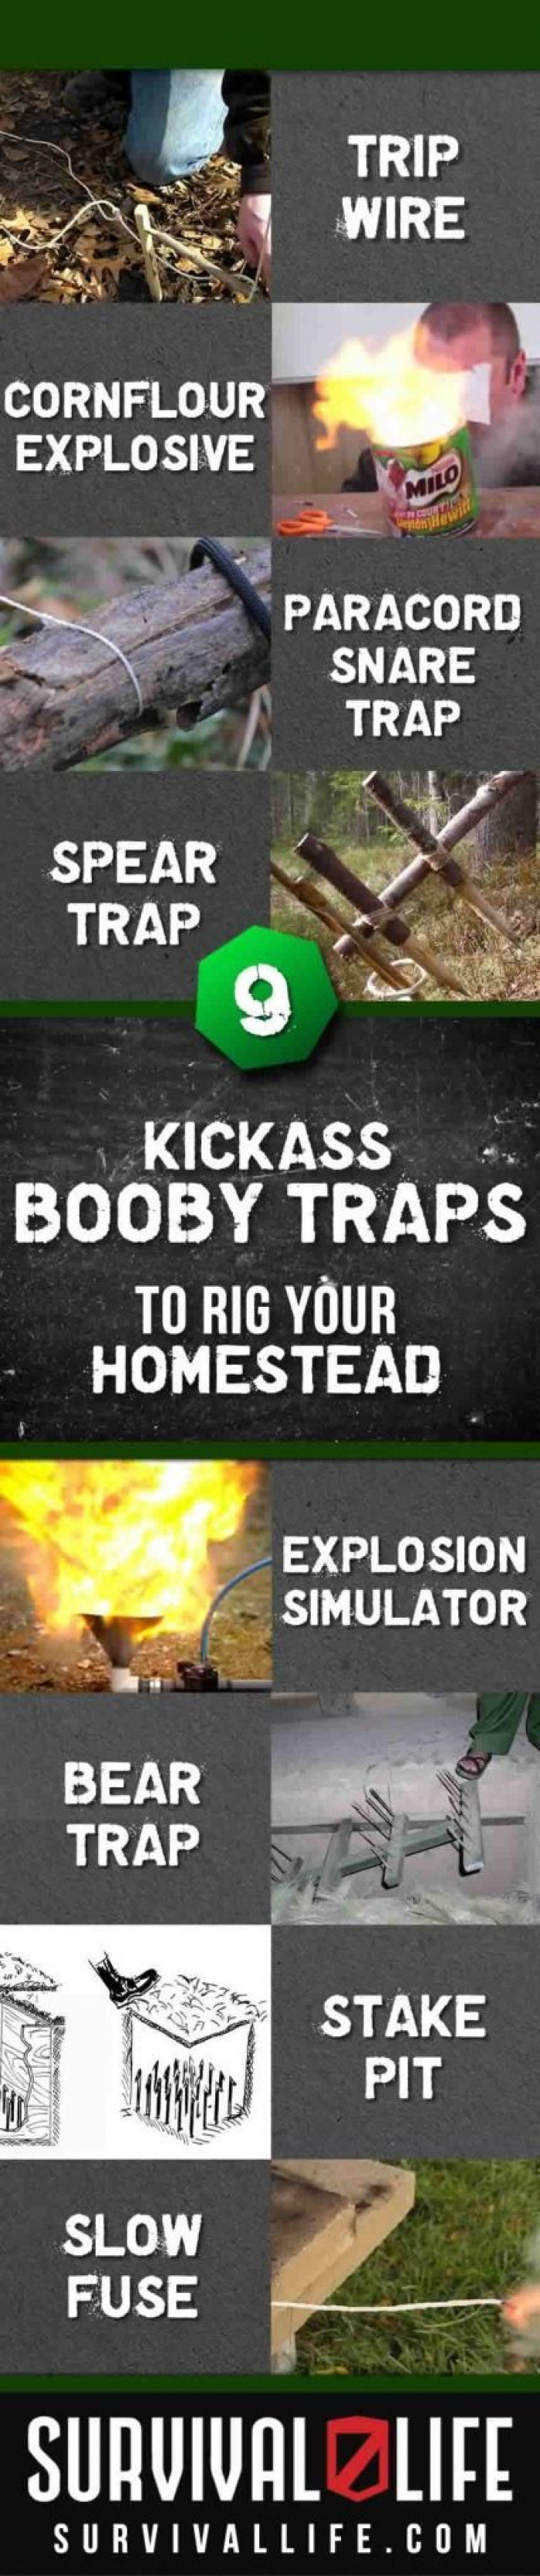 9 Kickass Booby Traps To Protect Your Home